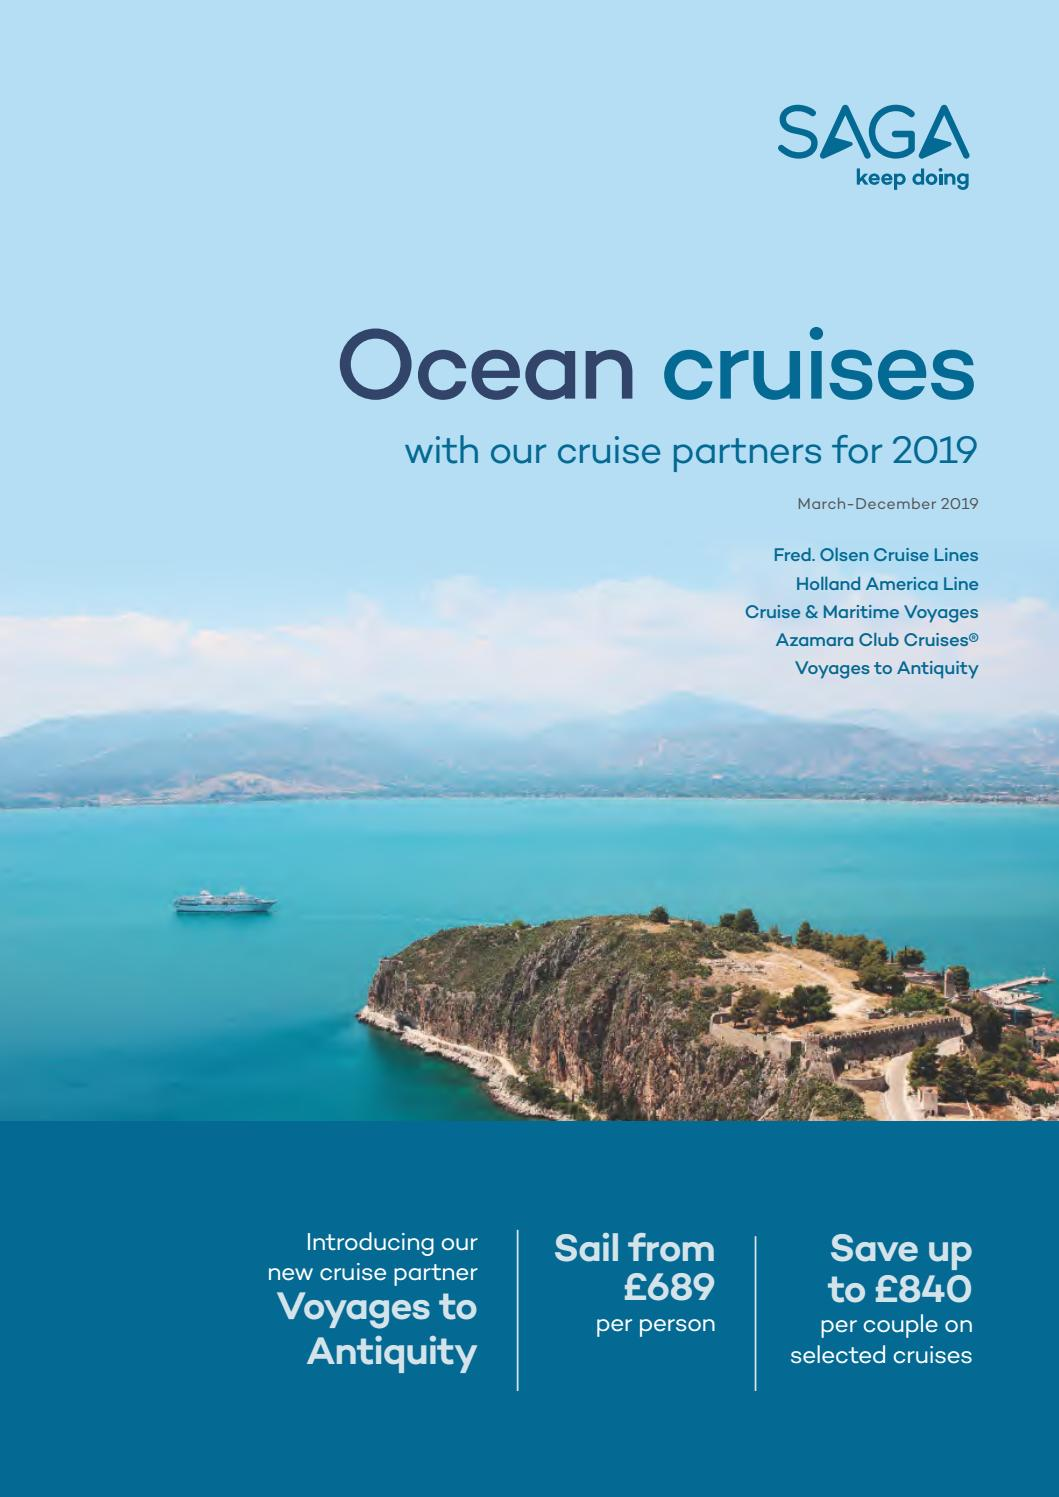 SAGA Holidays Ocean cruises with our partners for 2019 by Travel